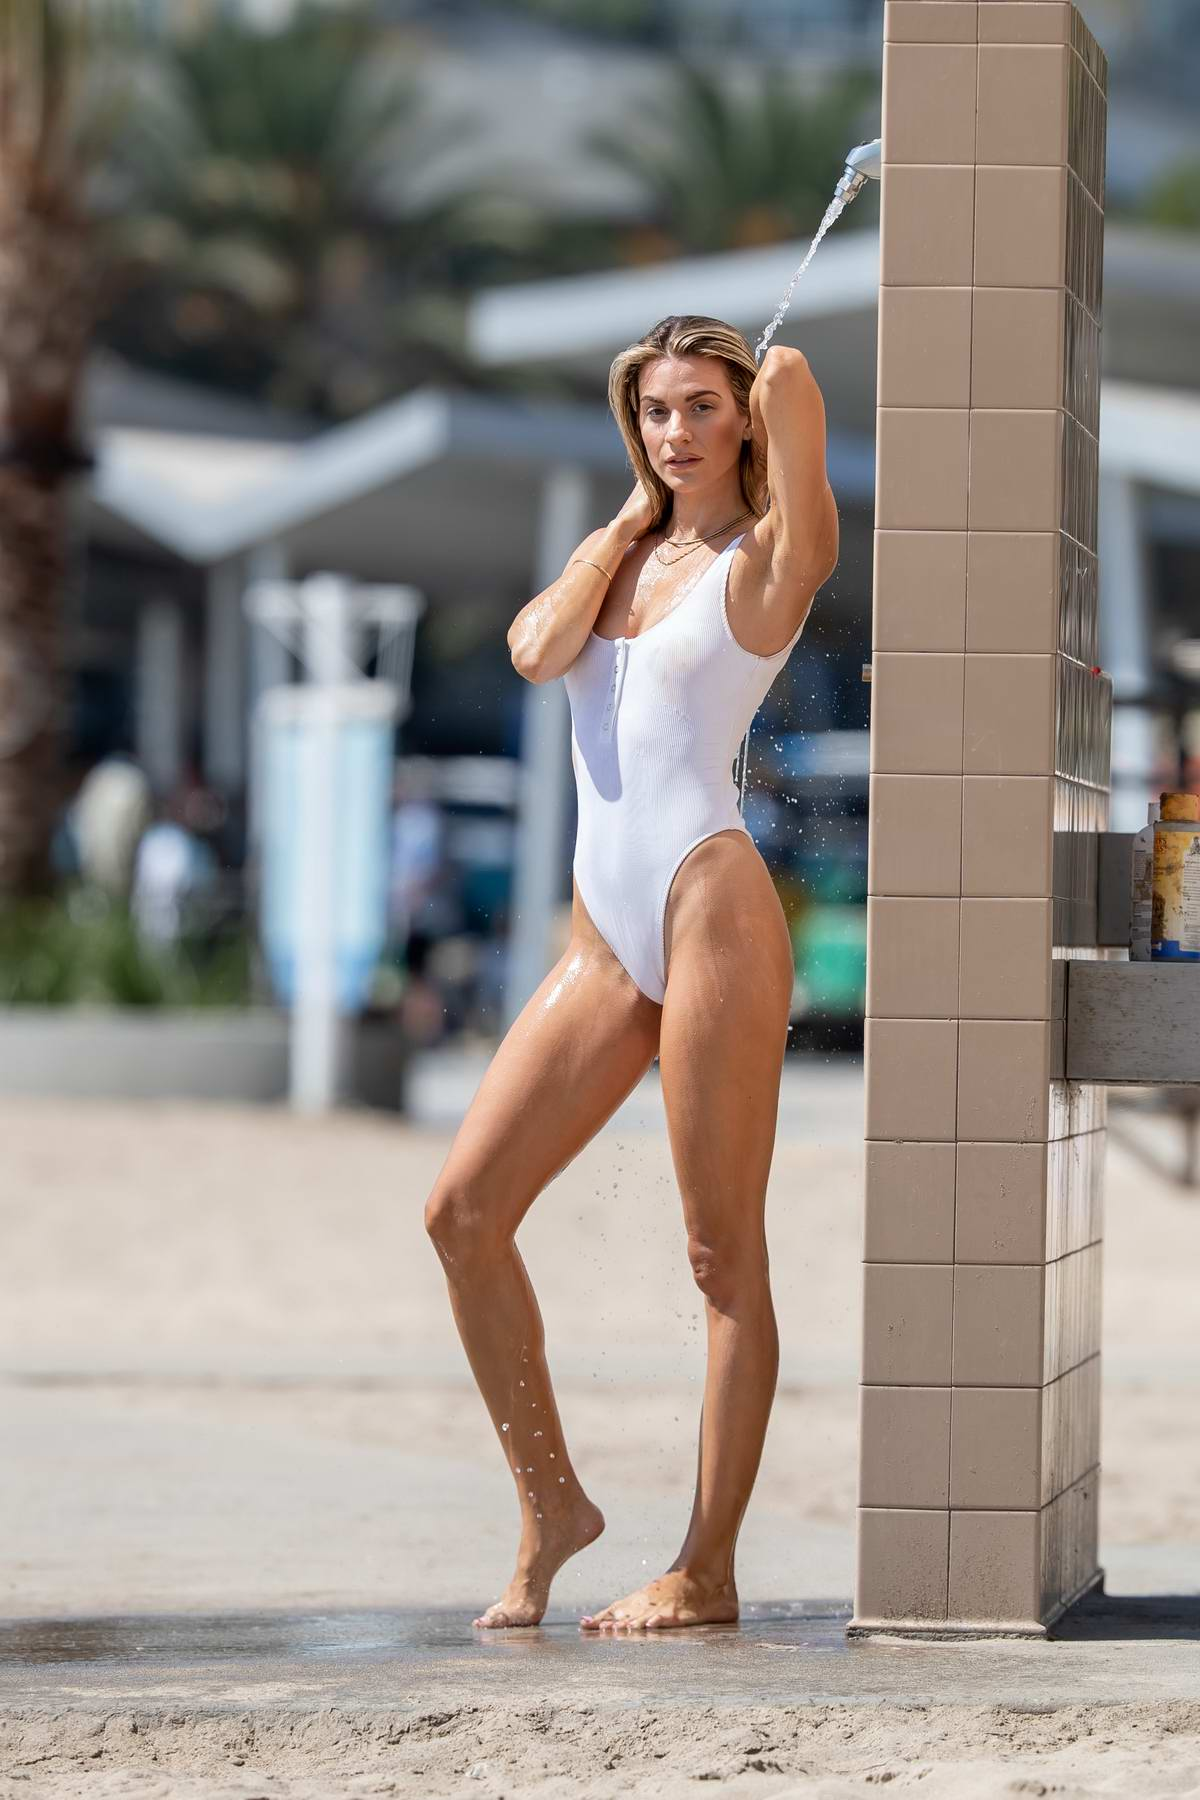 Rachel McCord looks stunning in a white swimsuit as she enjoys a day at the beach in Santa Monica, California